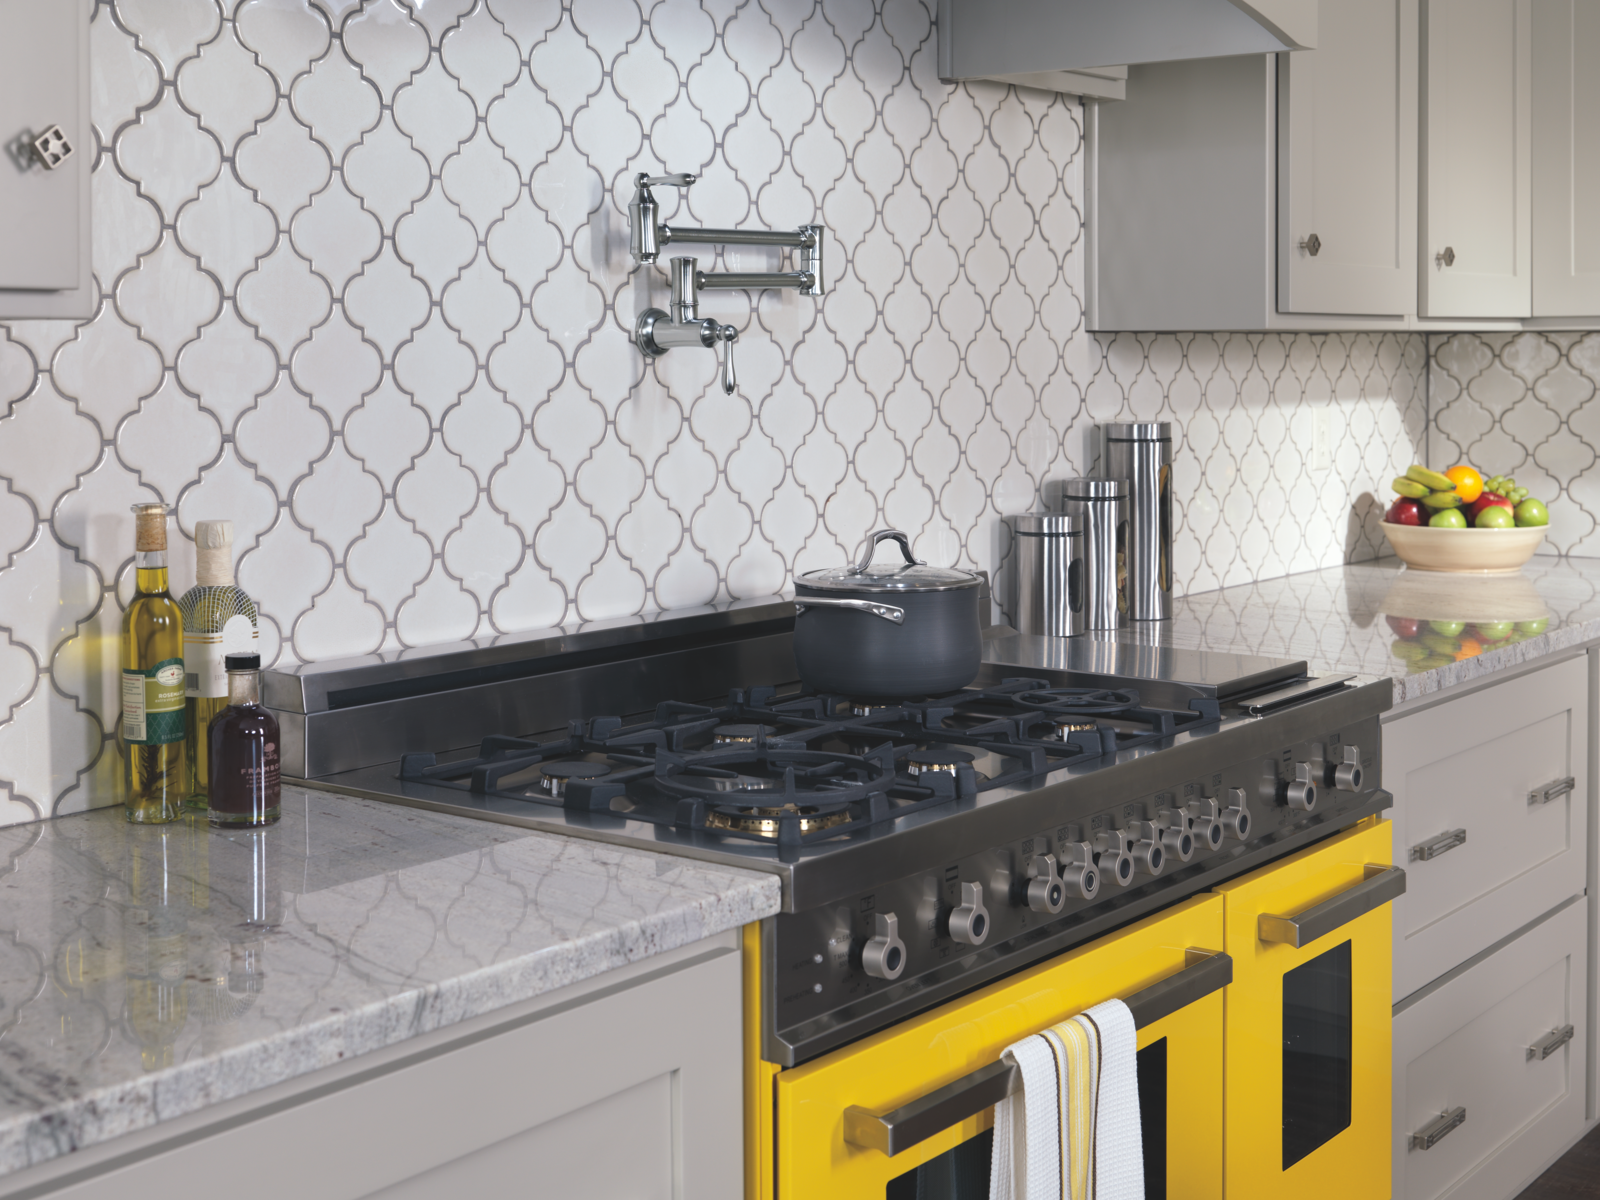 Photo 7 of 8 in 8 Ways to Refresh and Personalize Your Kitchen